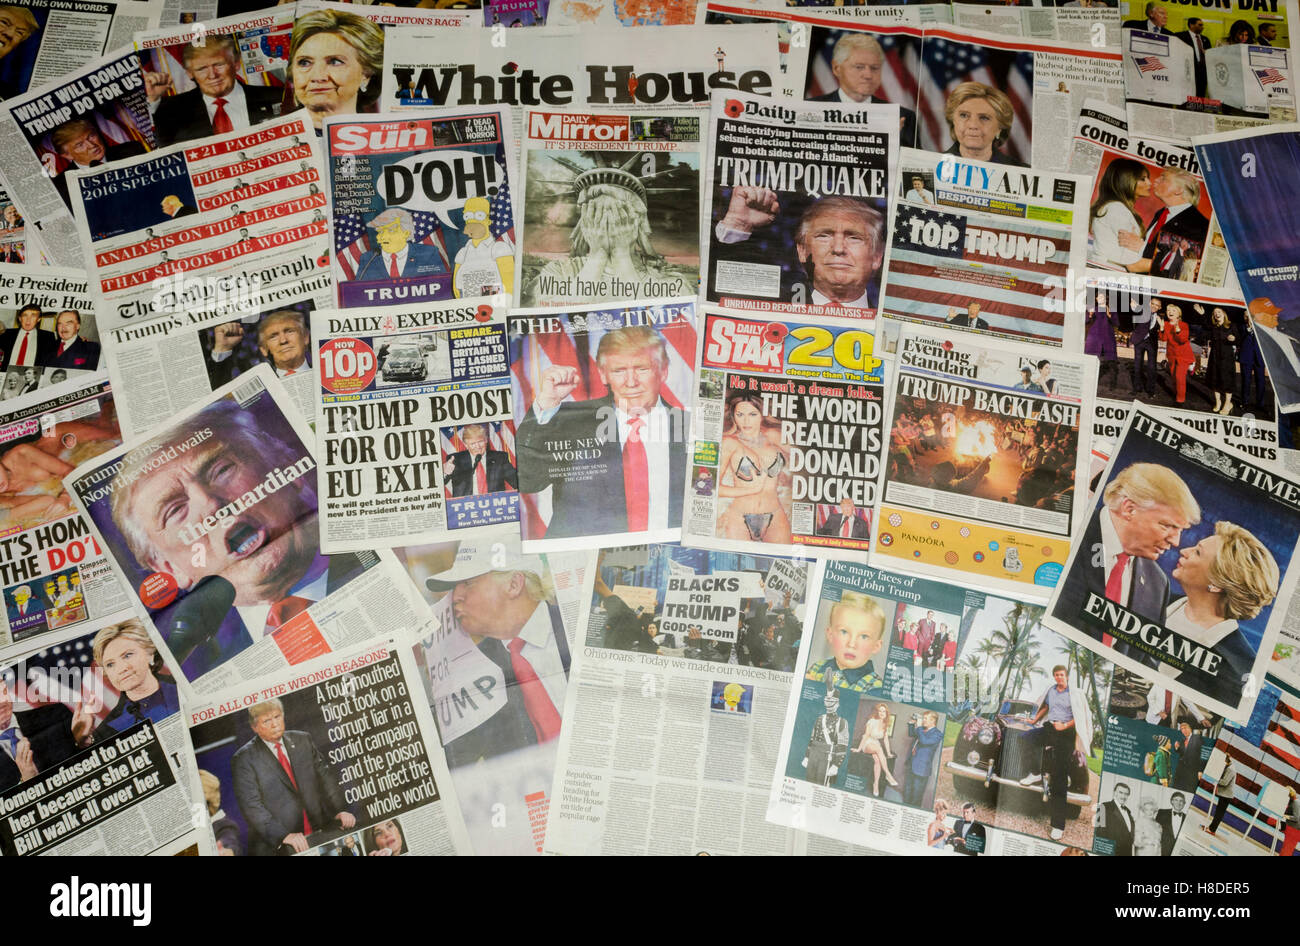 British newspaper front pages reporting on the US presidential election result in which Donald Trump became the - Stock Image